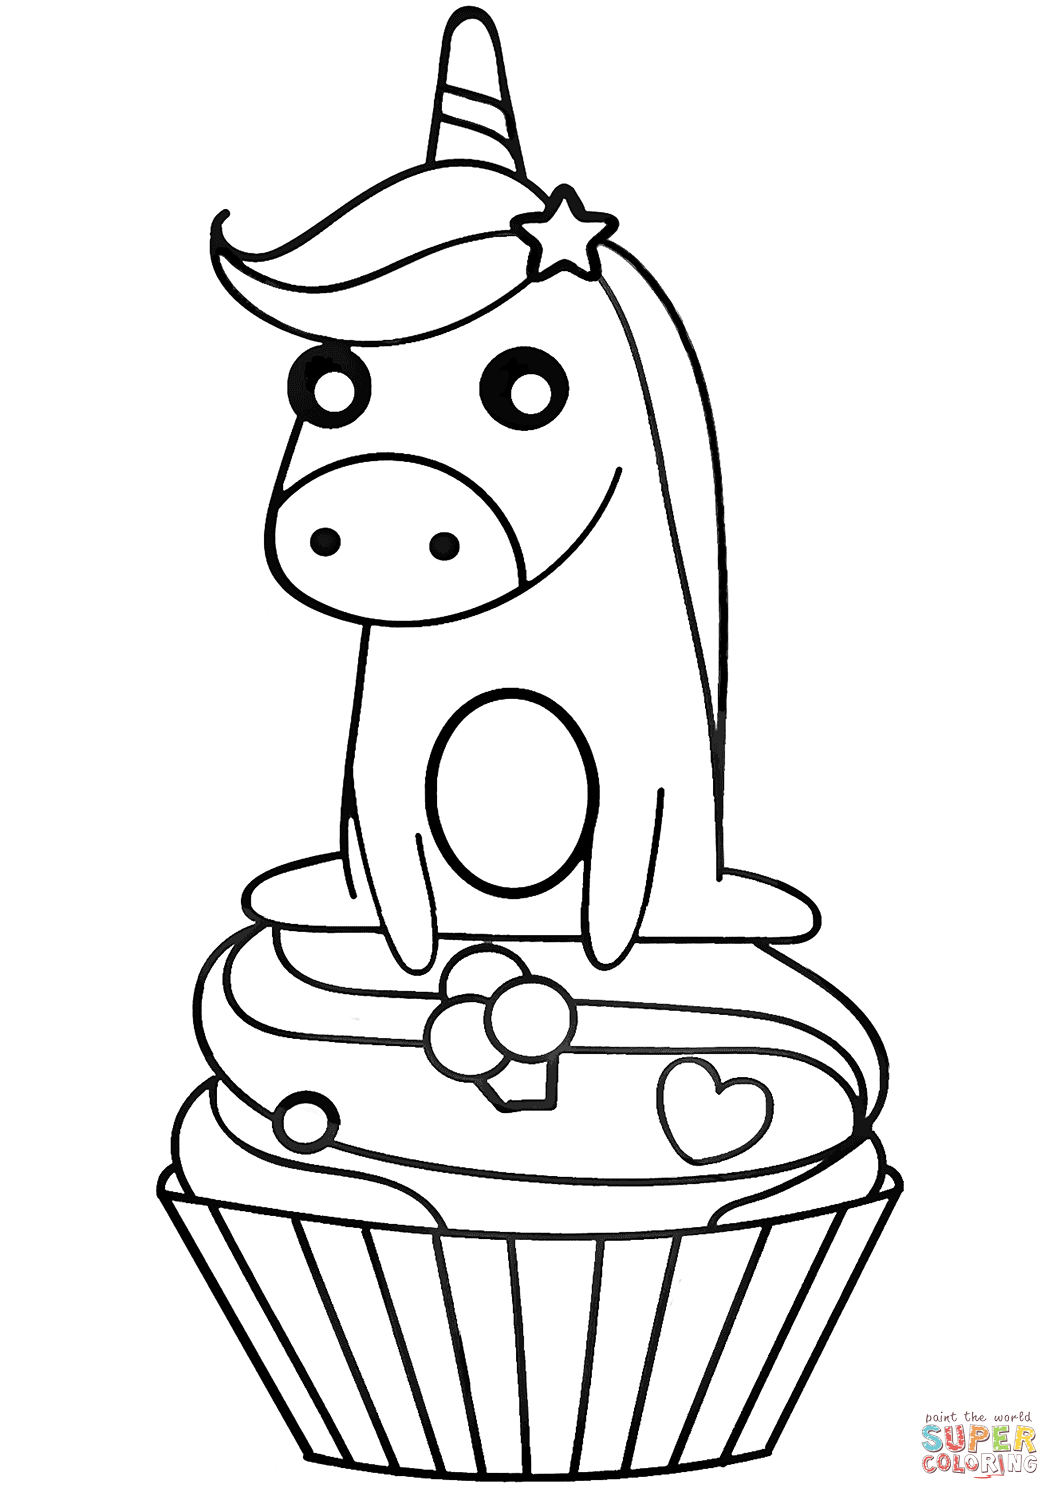 Unicorn On Cupcake Super Coloring In 2020 Cupcake Coloring